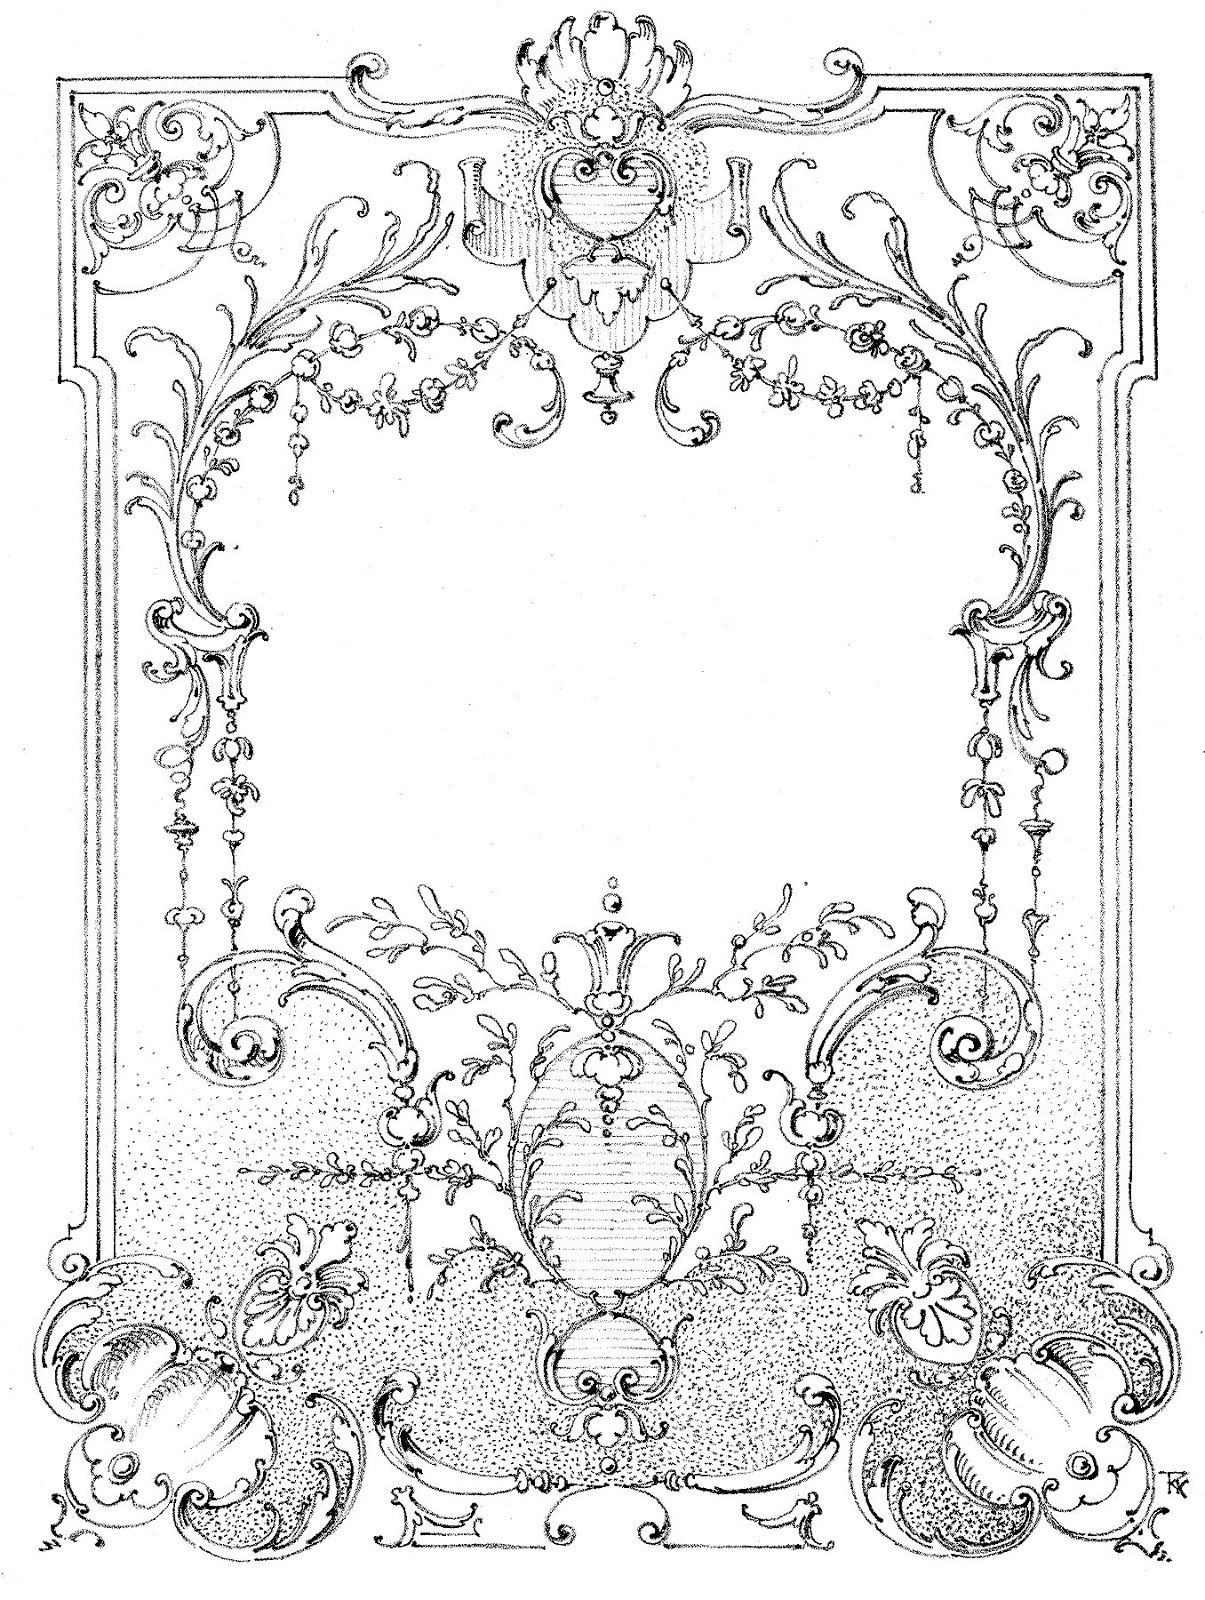 Vintage Illustrations - Gorgeous Ornate Label - Frame | Pinterest ...